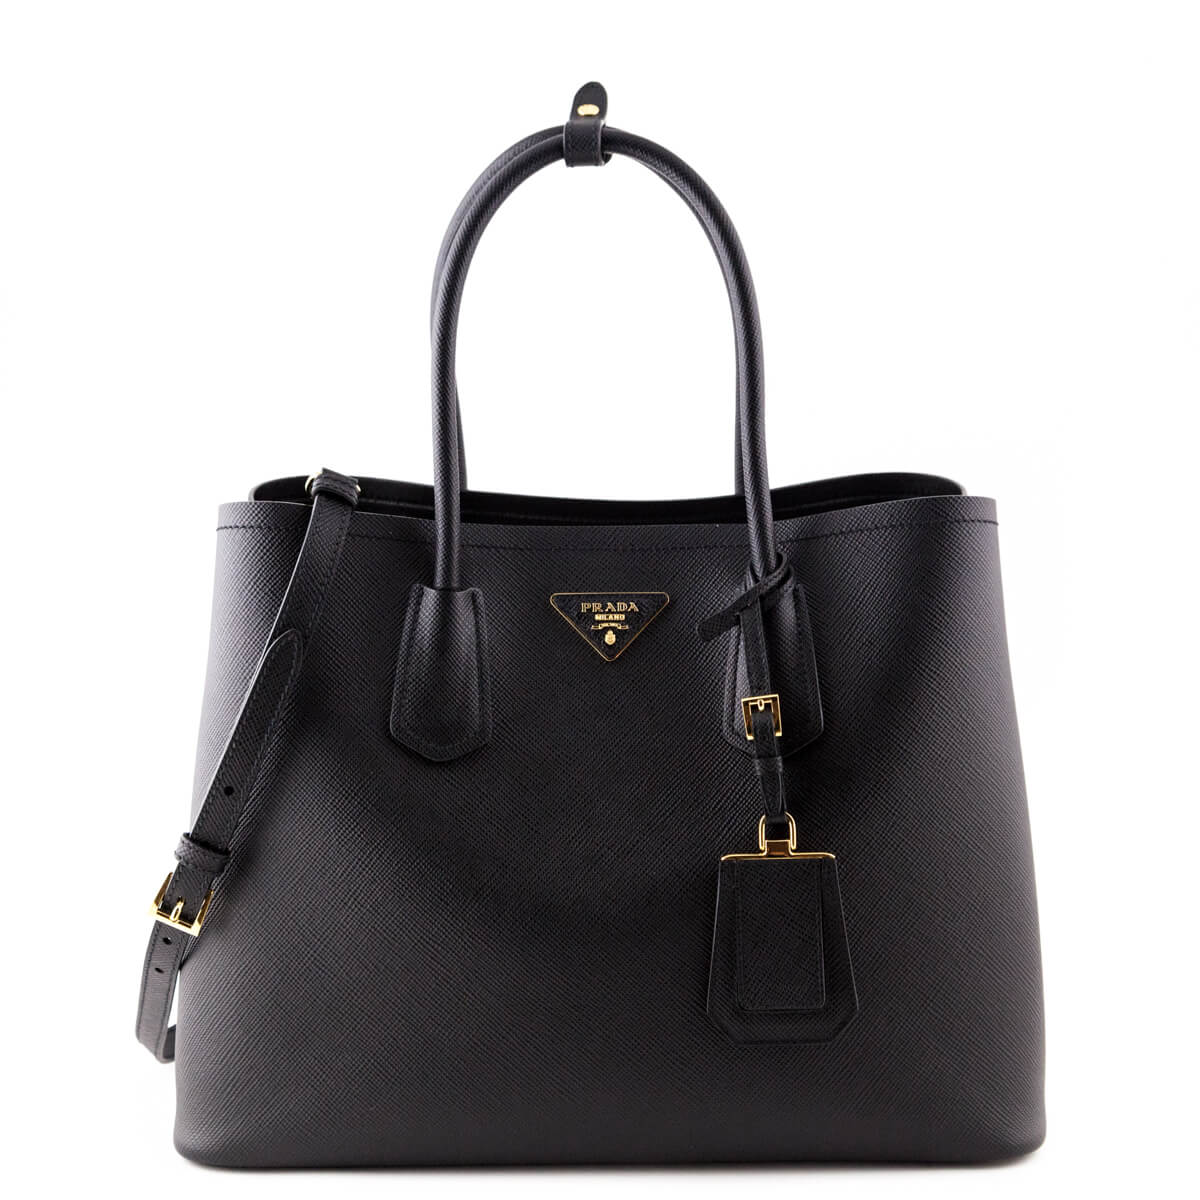 Prada Black Saffiano Double Bag - LOVE that BAG - Preowned Authentic  Designer Handbags ...